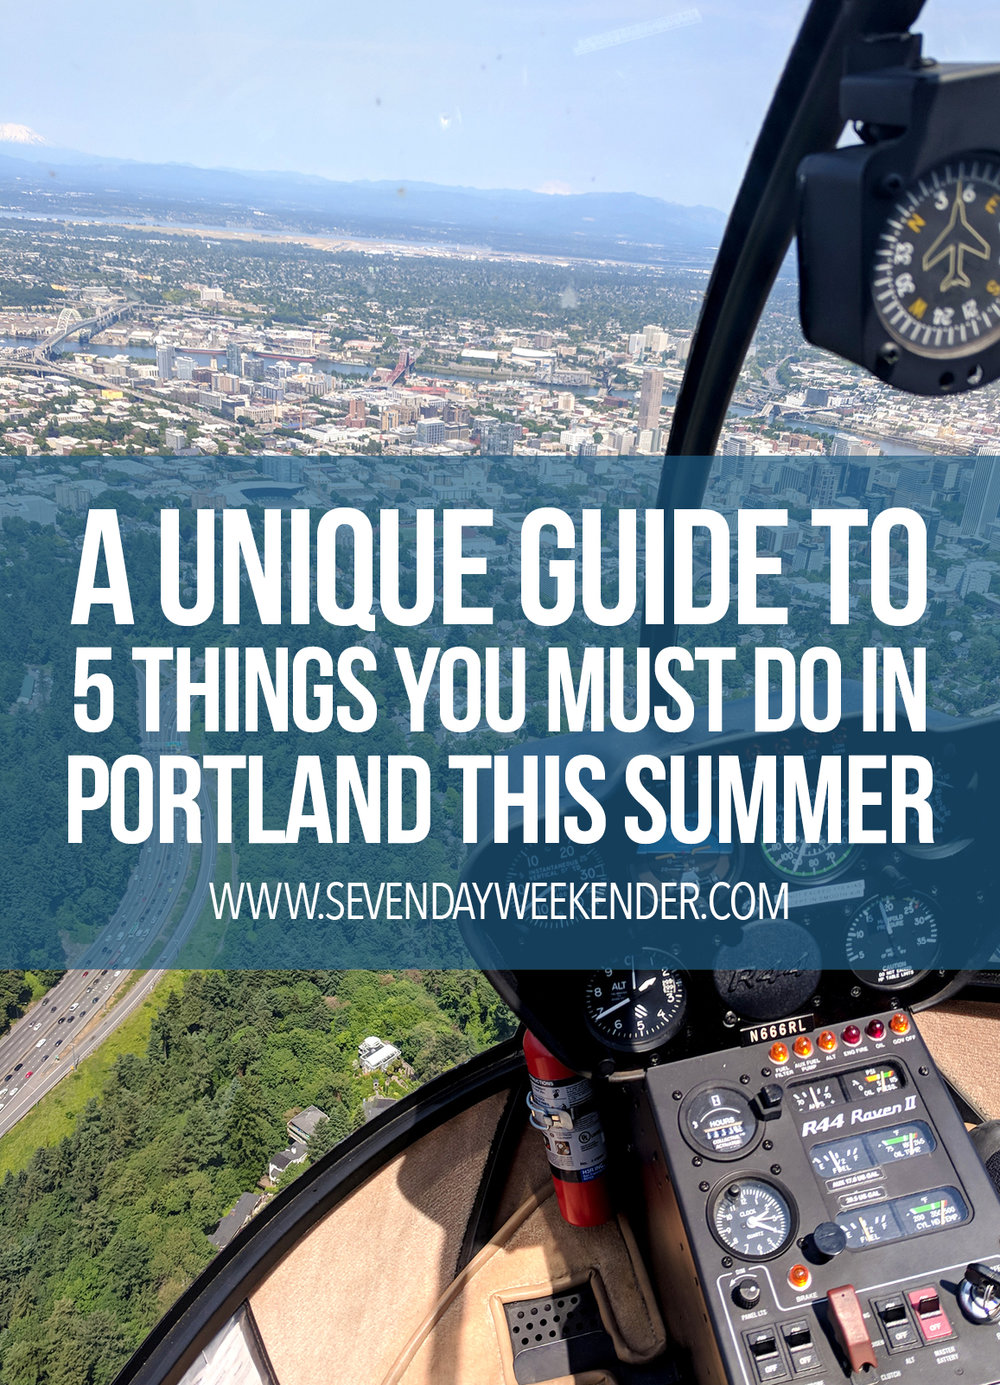 Unique Guide to Portland in Summer